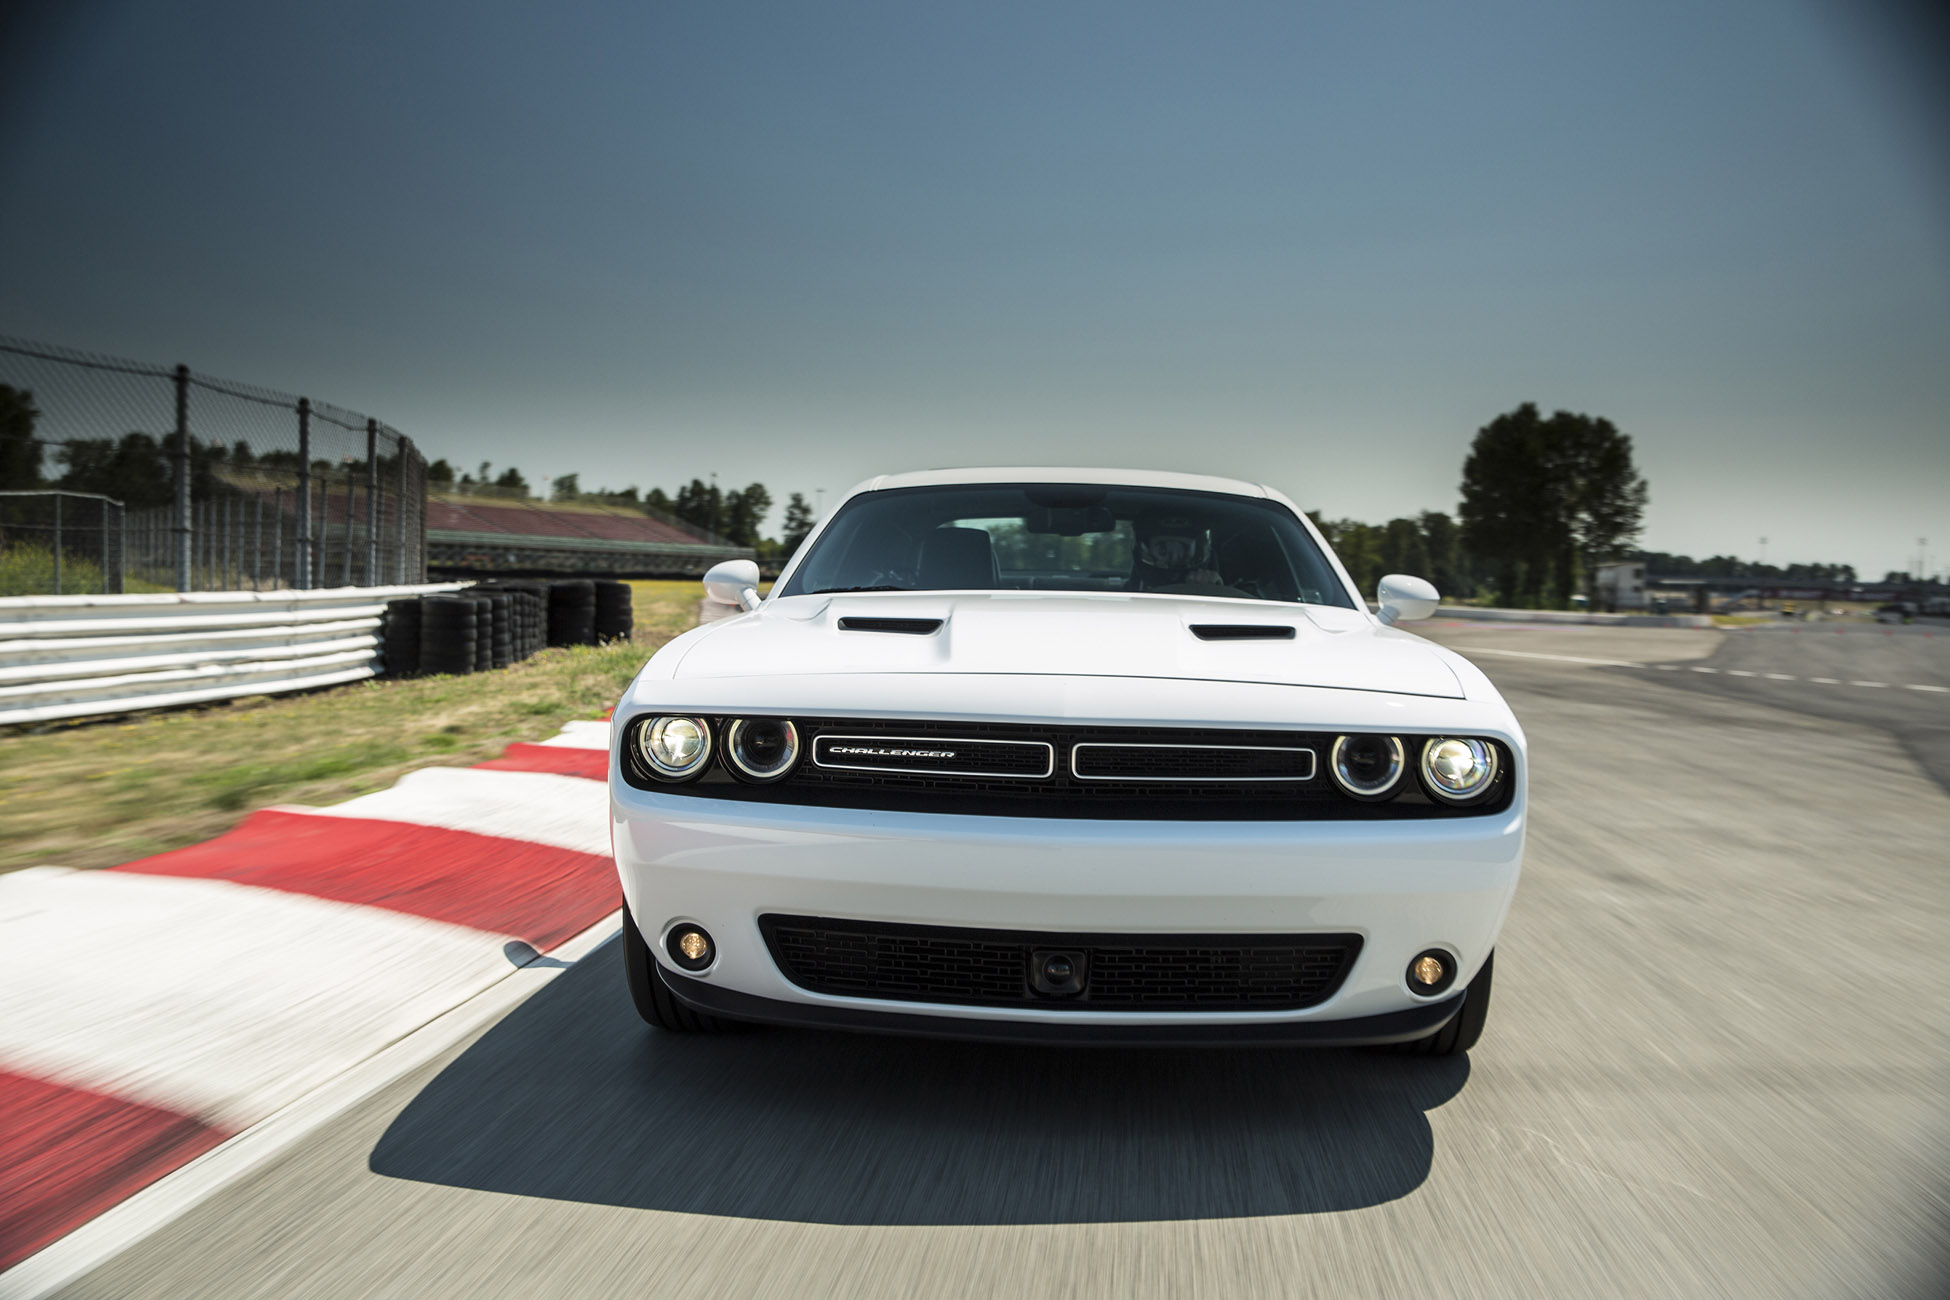 2015 dodge challenger earns 5 star safety rating muscle cars news and pictures. Cars Review. Best American Auto & Cars Review